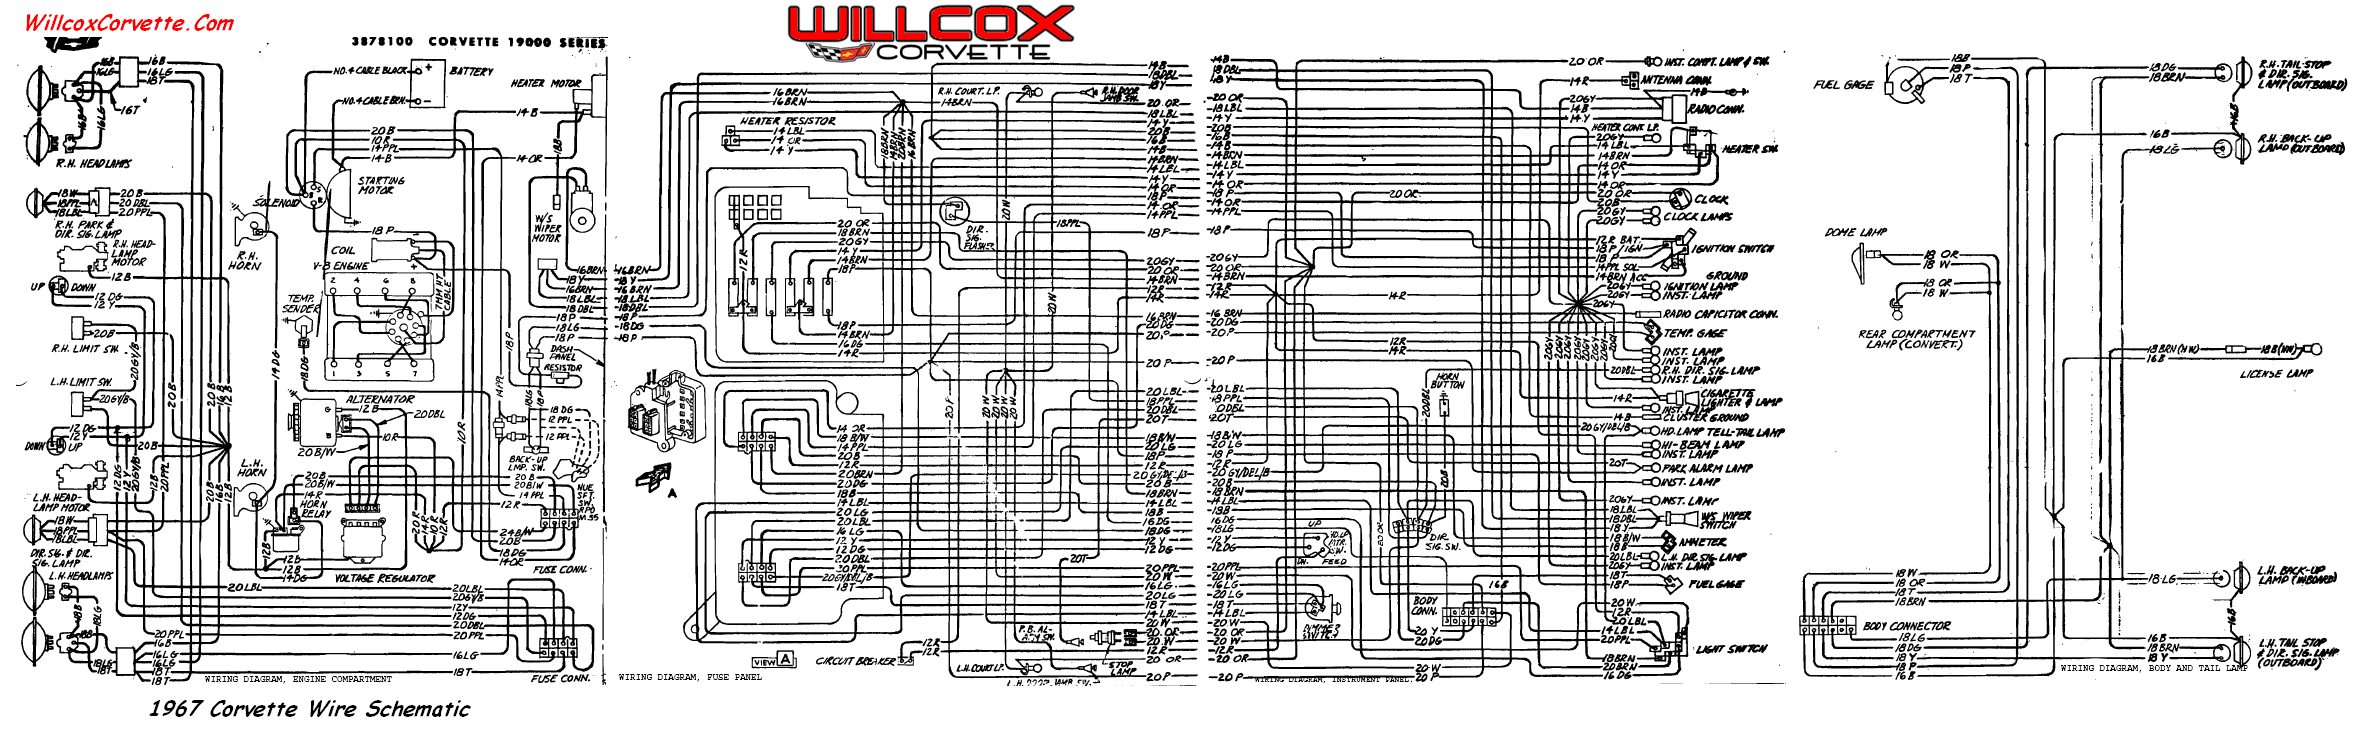 67 wire schematic for tracing wires 1967 corvette wiring diagram (tracer schematic) willcox corvette 1968 corvette wiring diagram free at nearapp.co